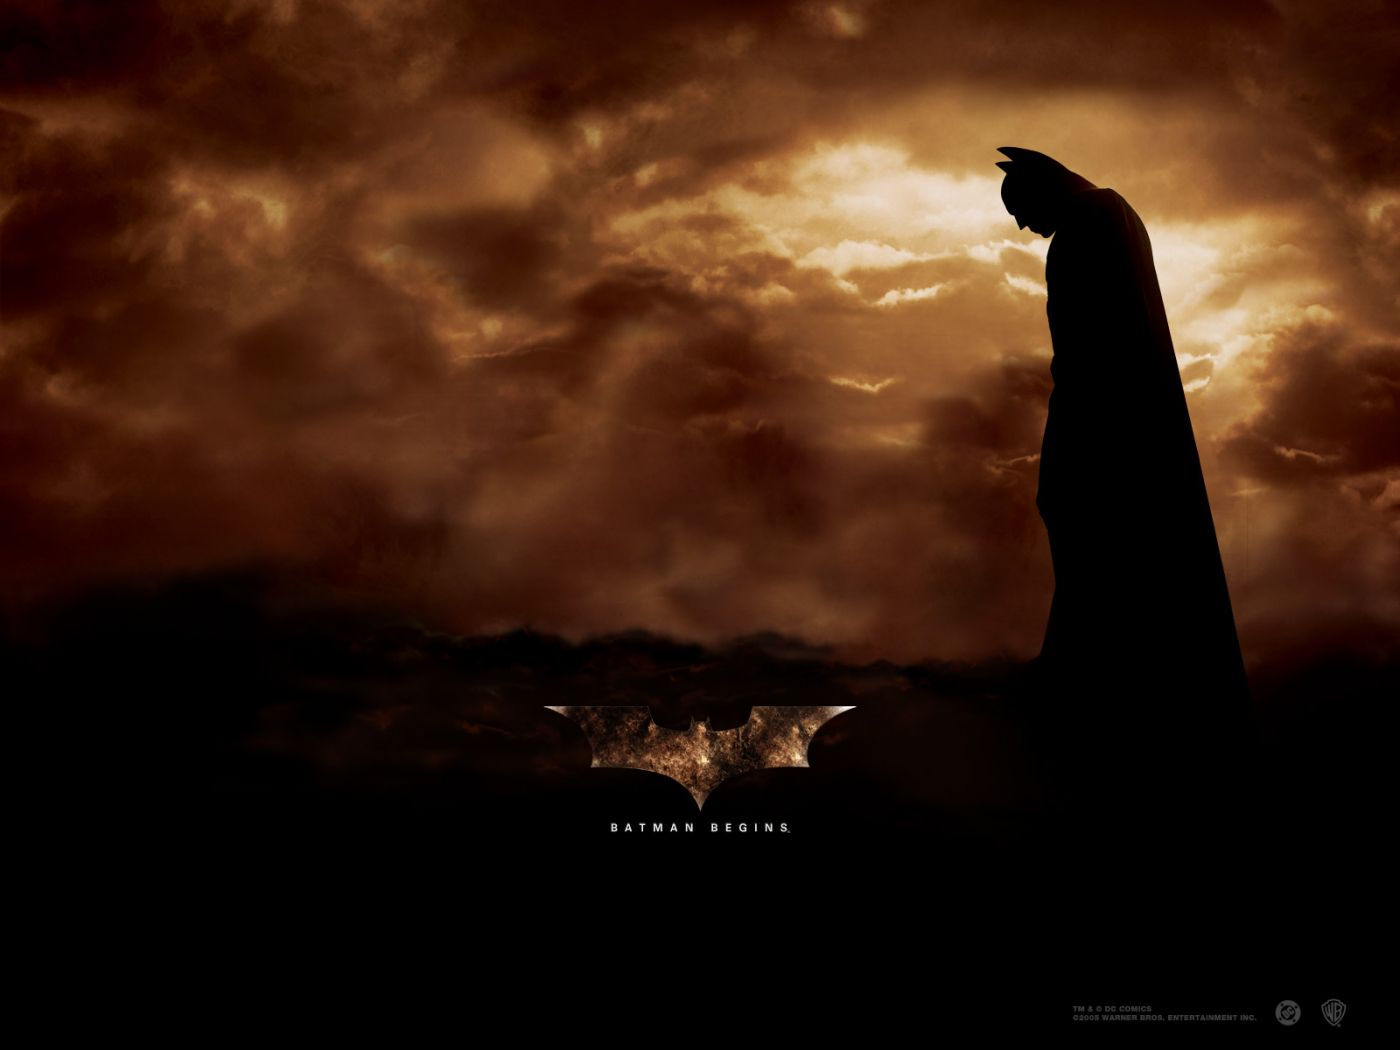 Batman Clouds Background Poster Wallpaper 1400x1050